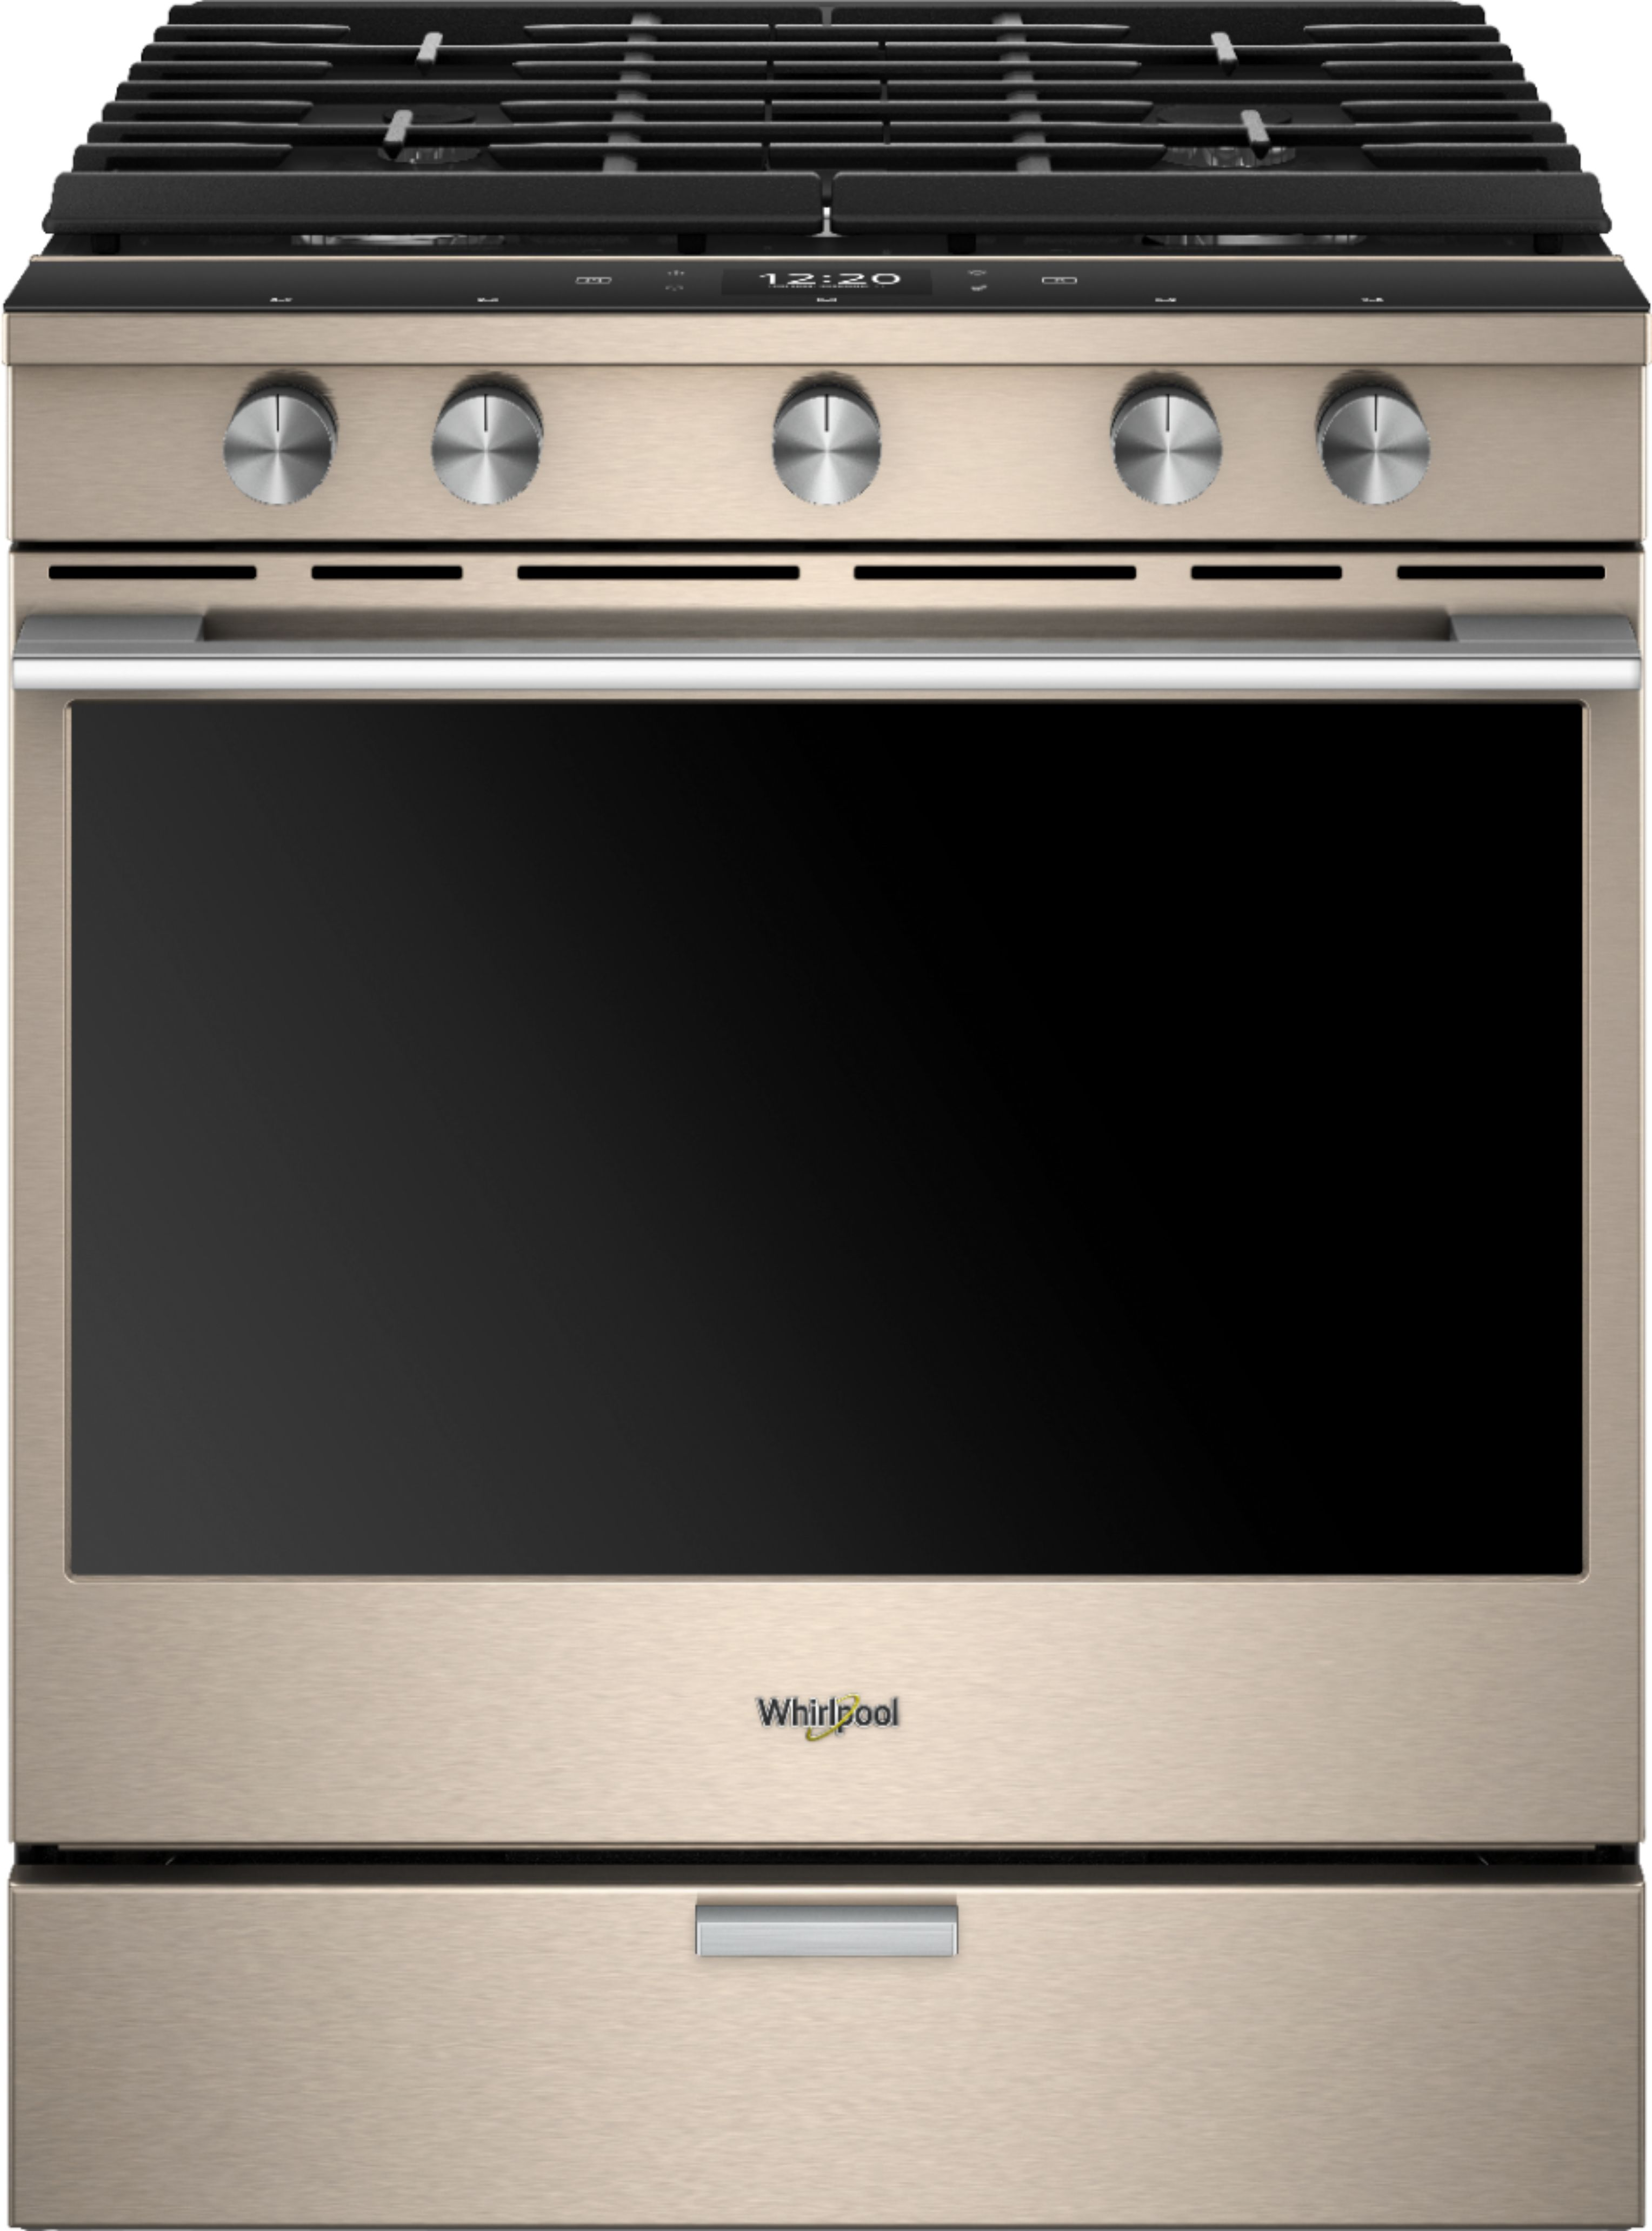 Whirlpool Sunset Bronze Gas Convection Range Offers All Of The Convenience You Can Imagine